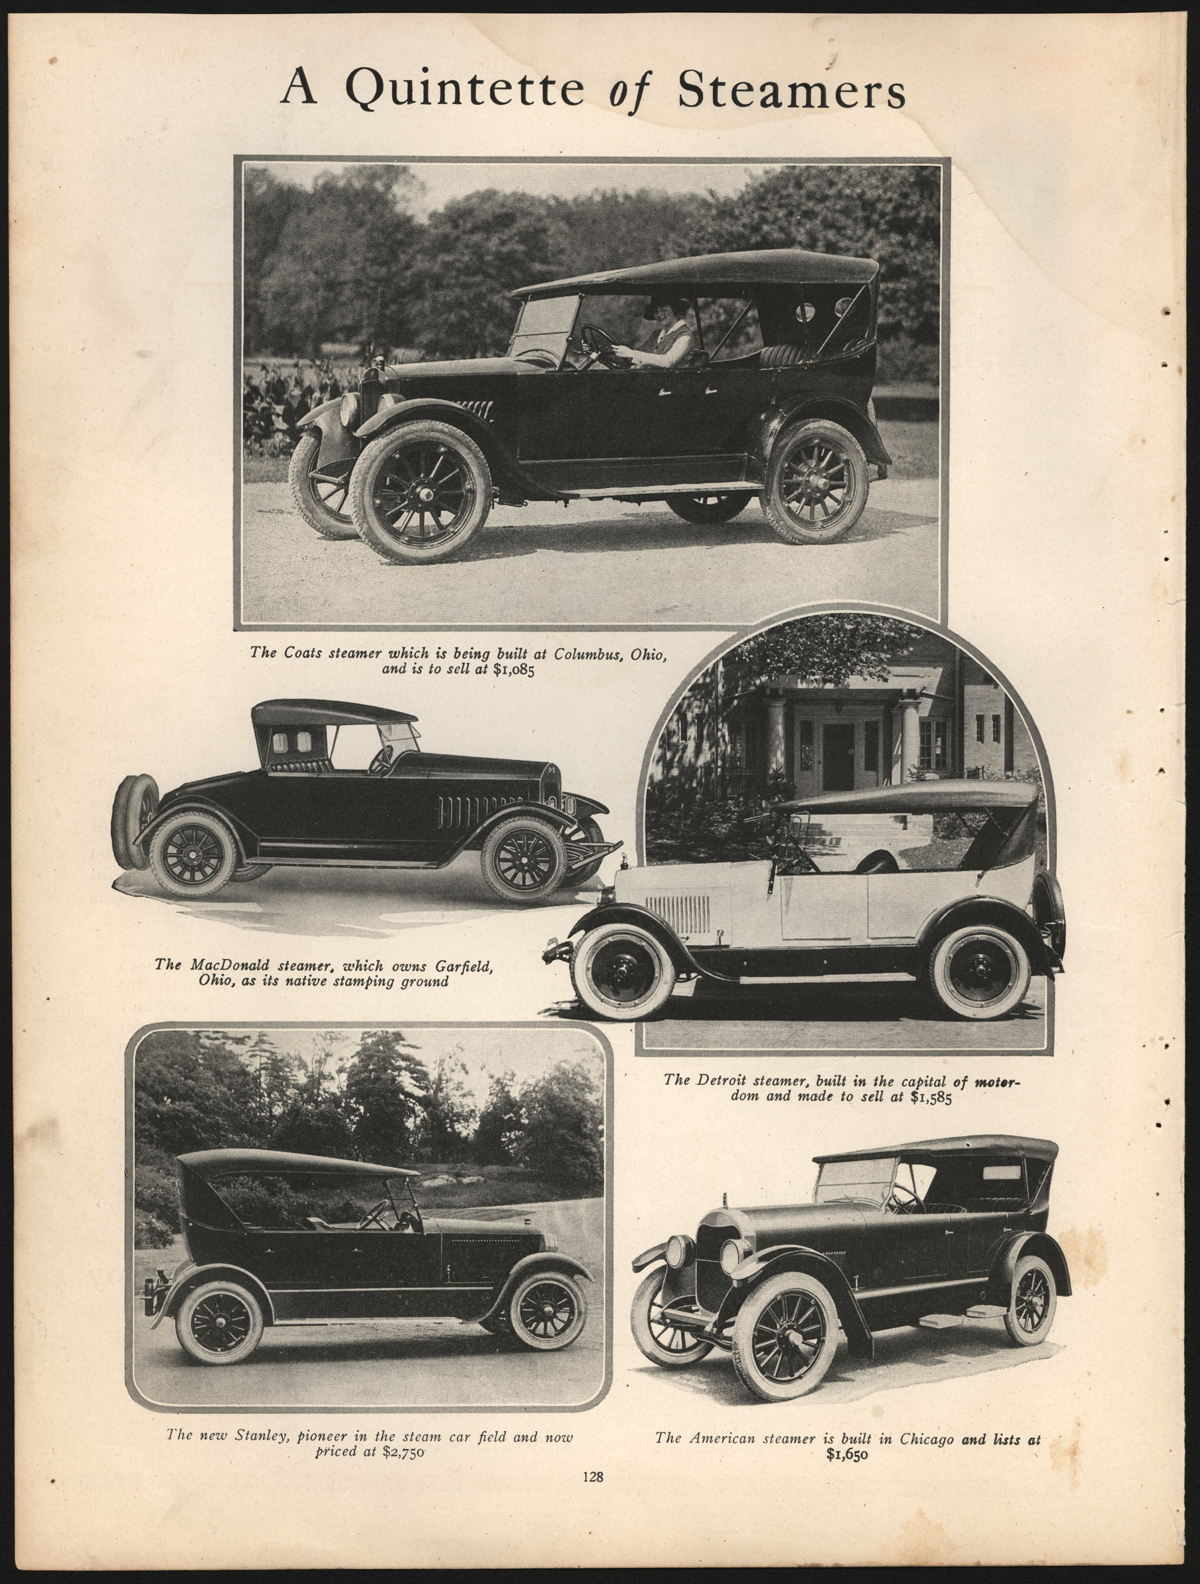 American Steam Truck Company, Passenger Car Department, American Steamer, January 1923, Motor Magazine, p. 128